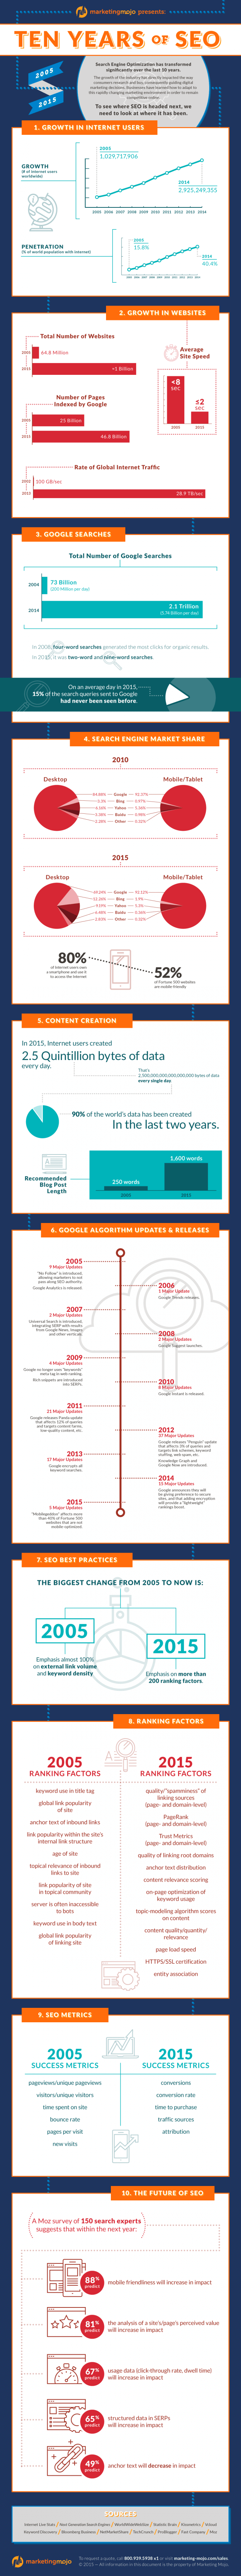 Ten Years of SEO